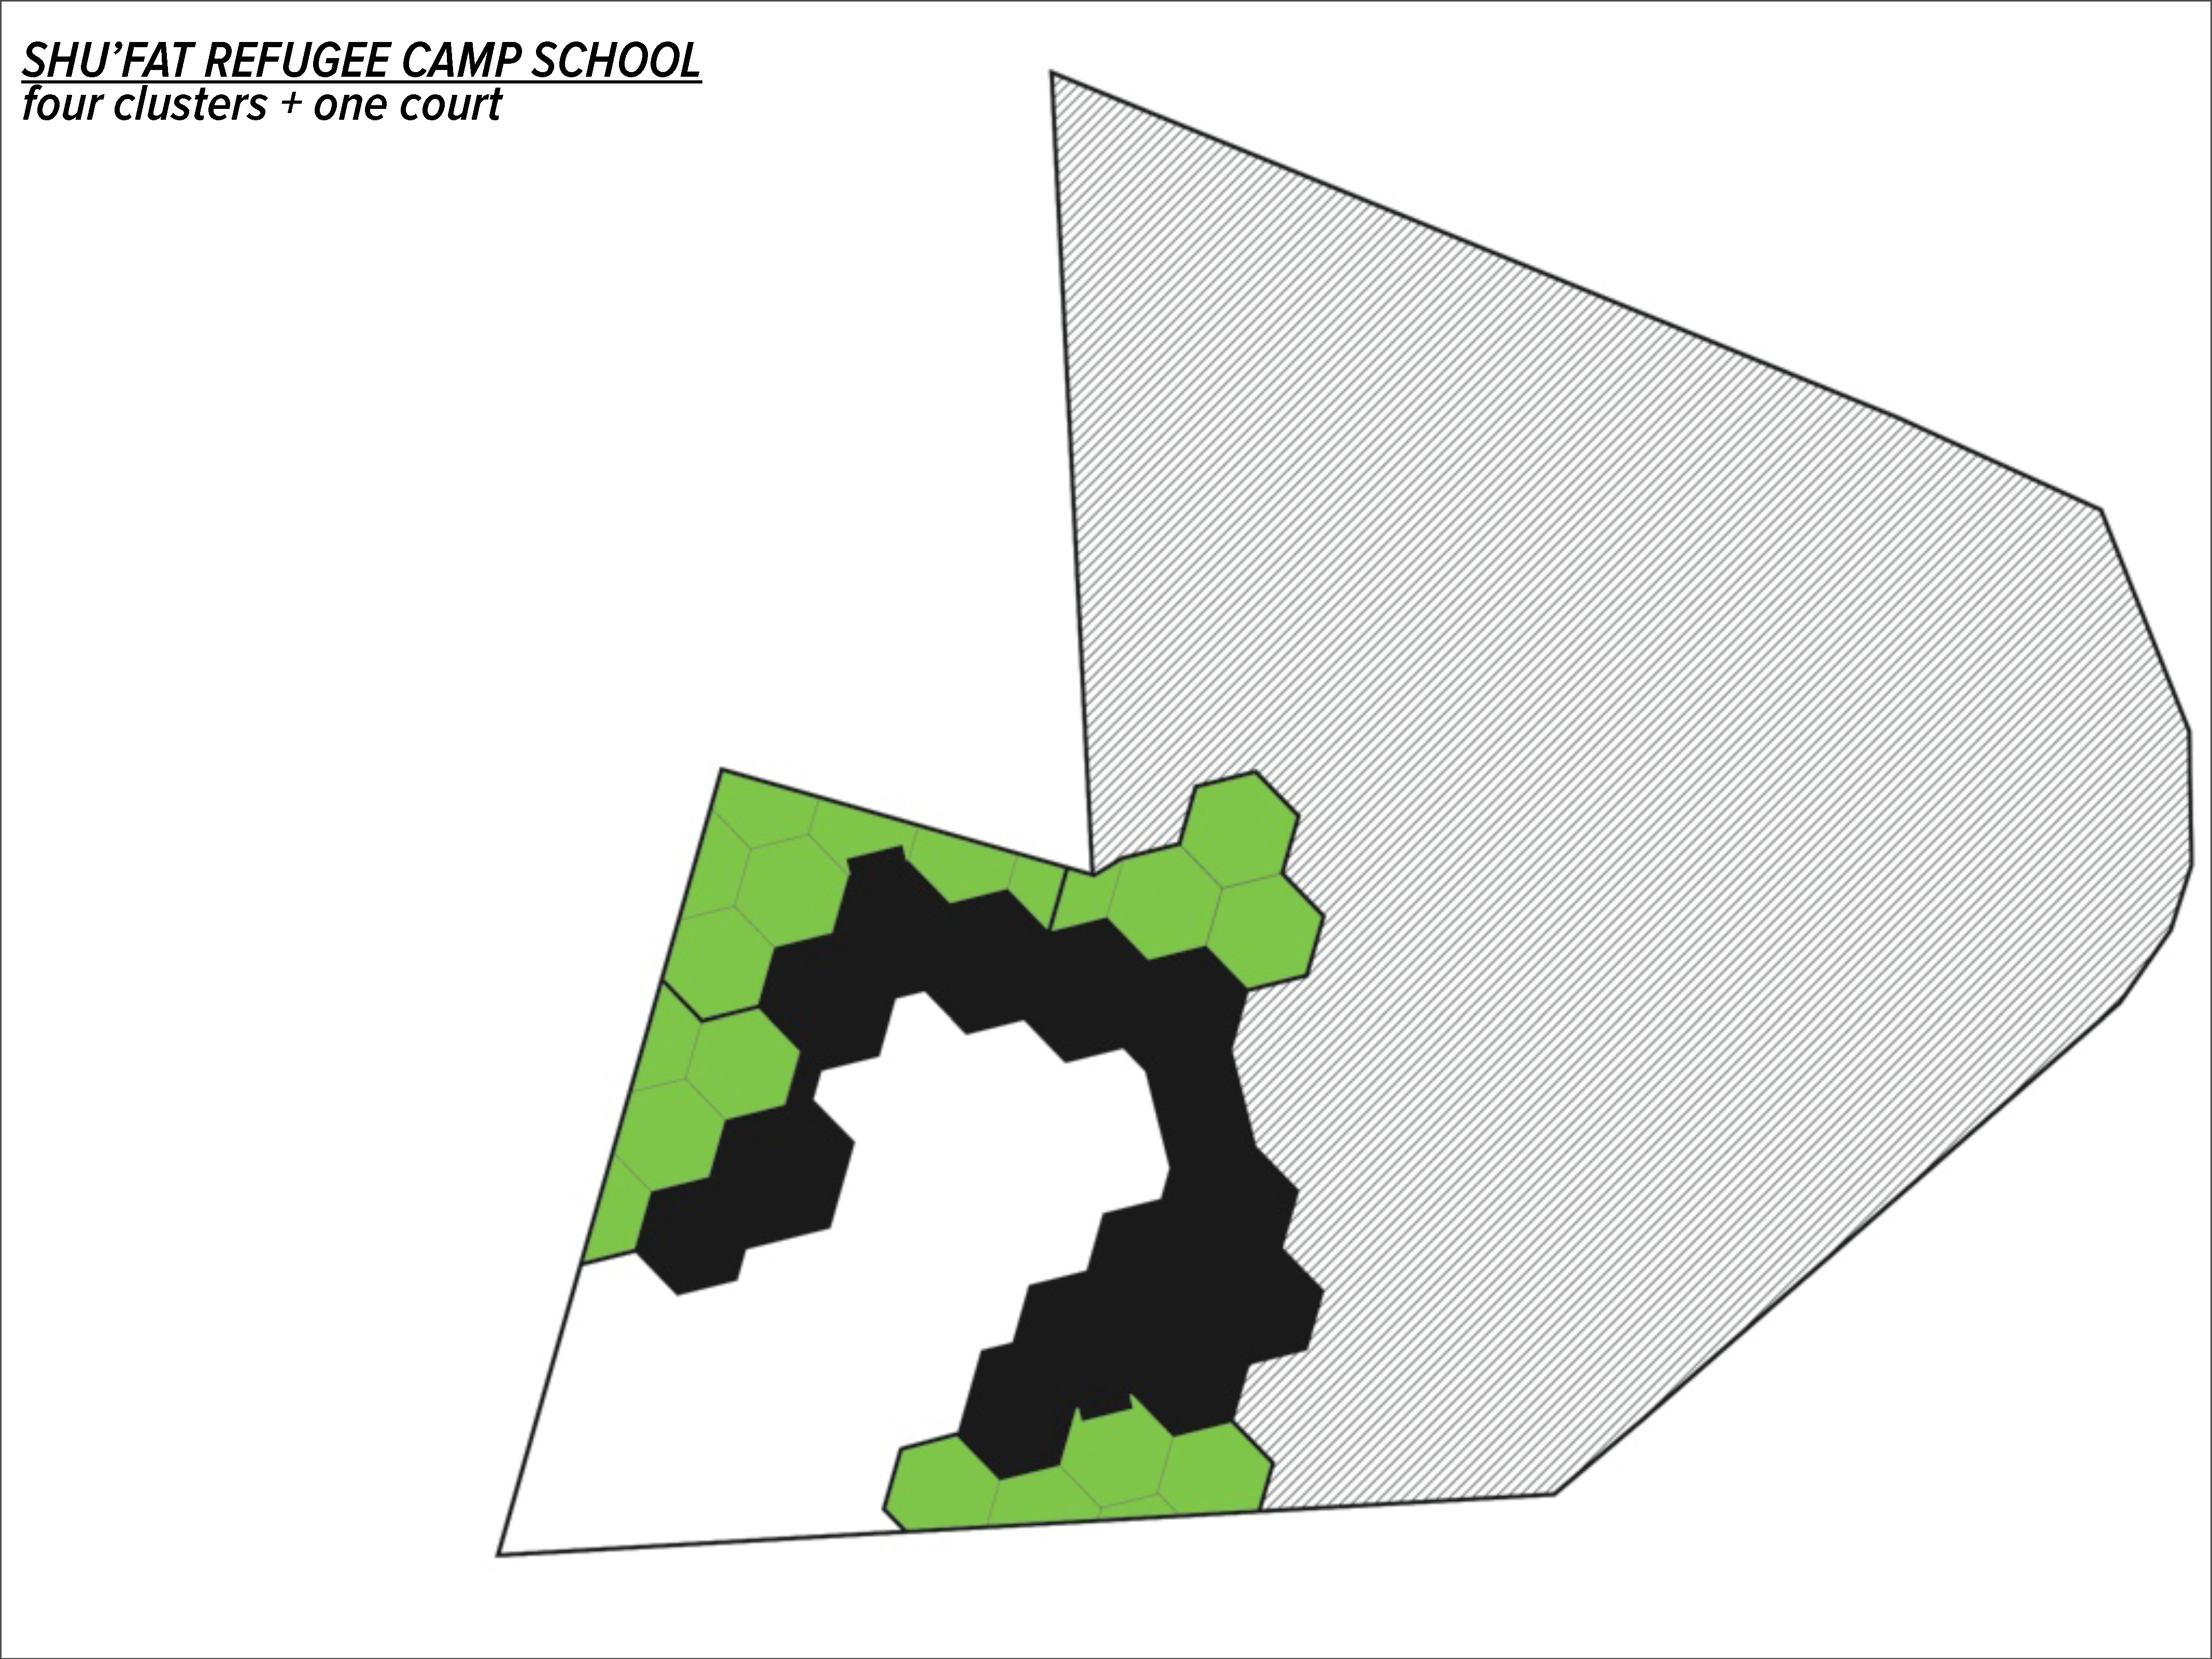 Four clusters and one court